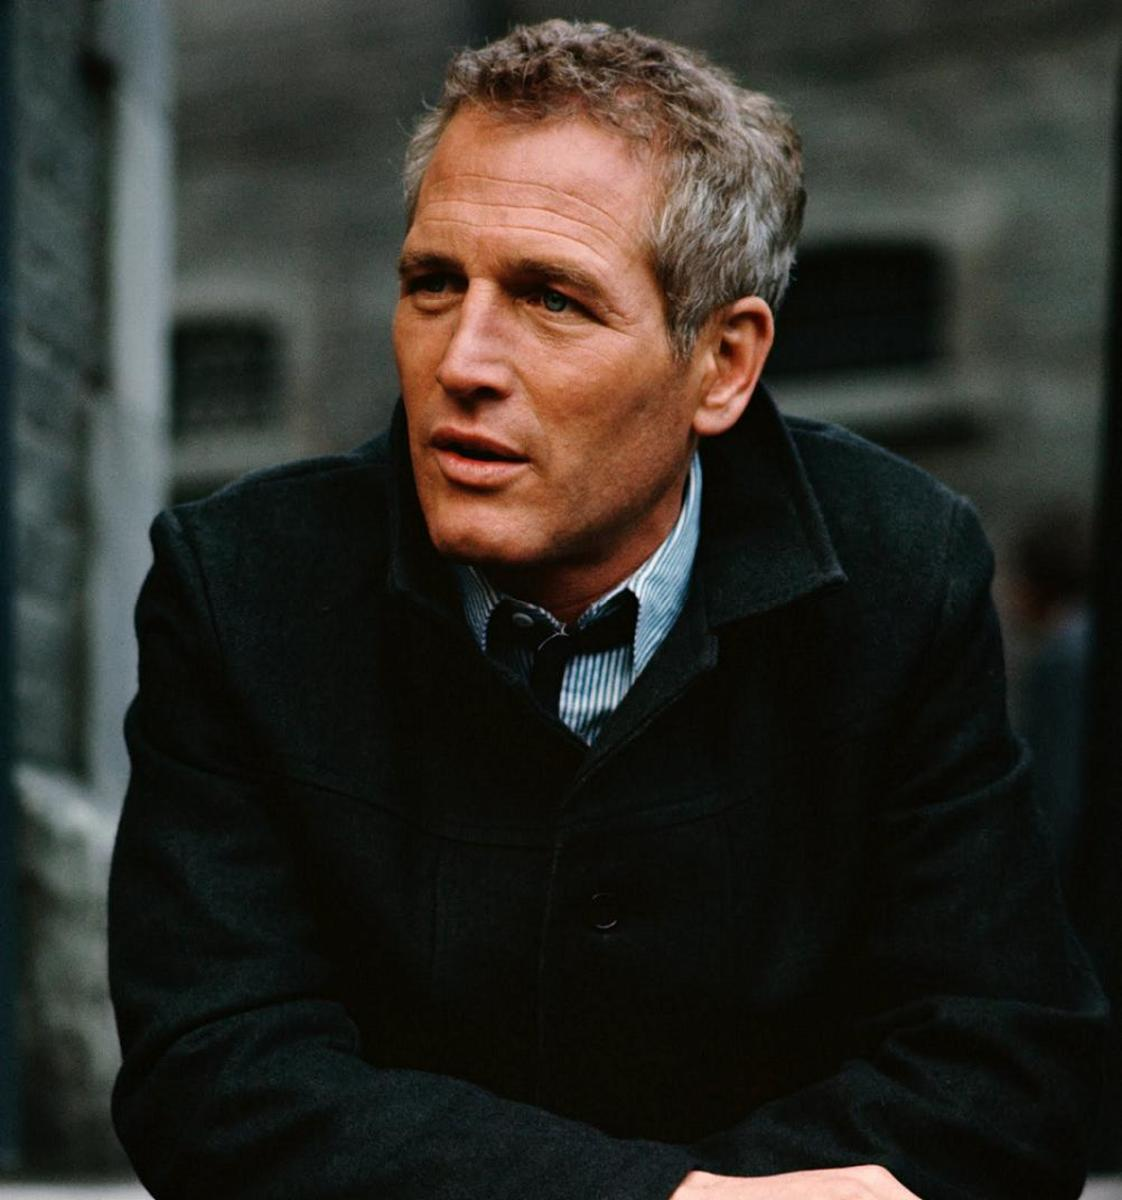 Newman fascinated moviegoers alike with his timeless appeal and his blue eyes.